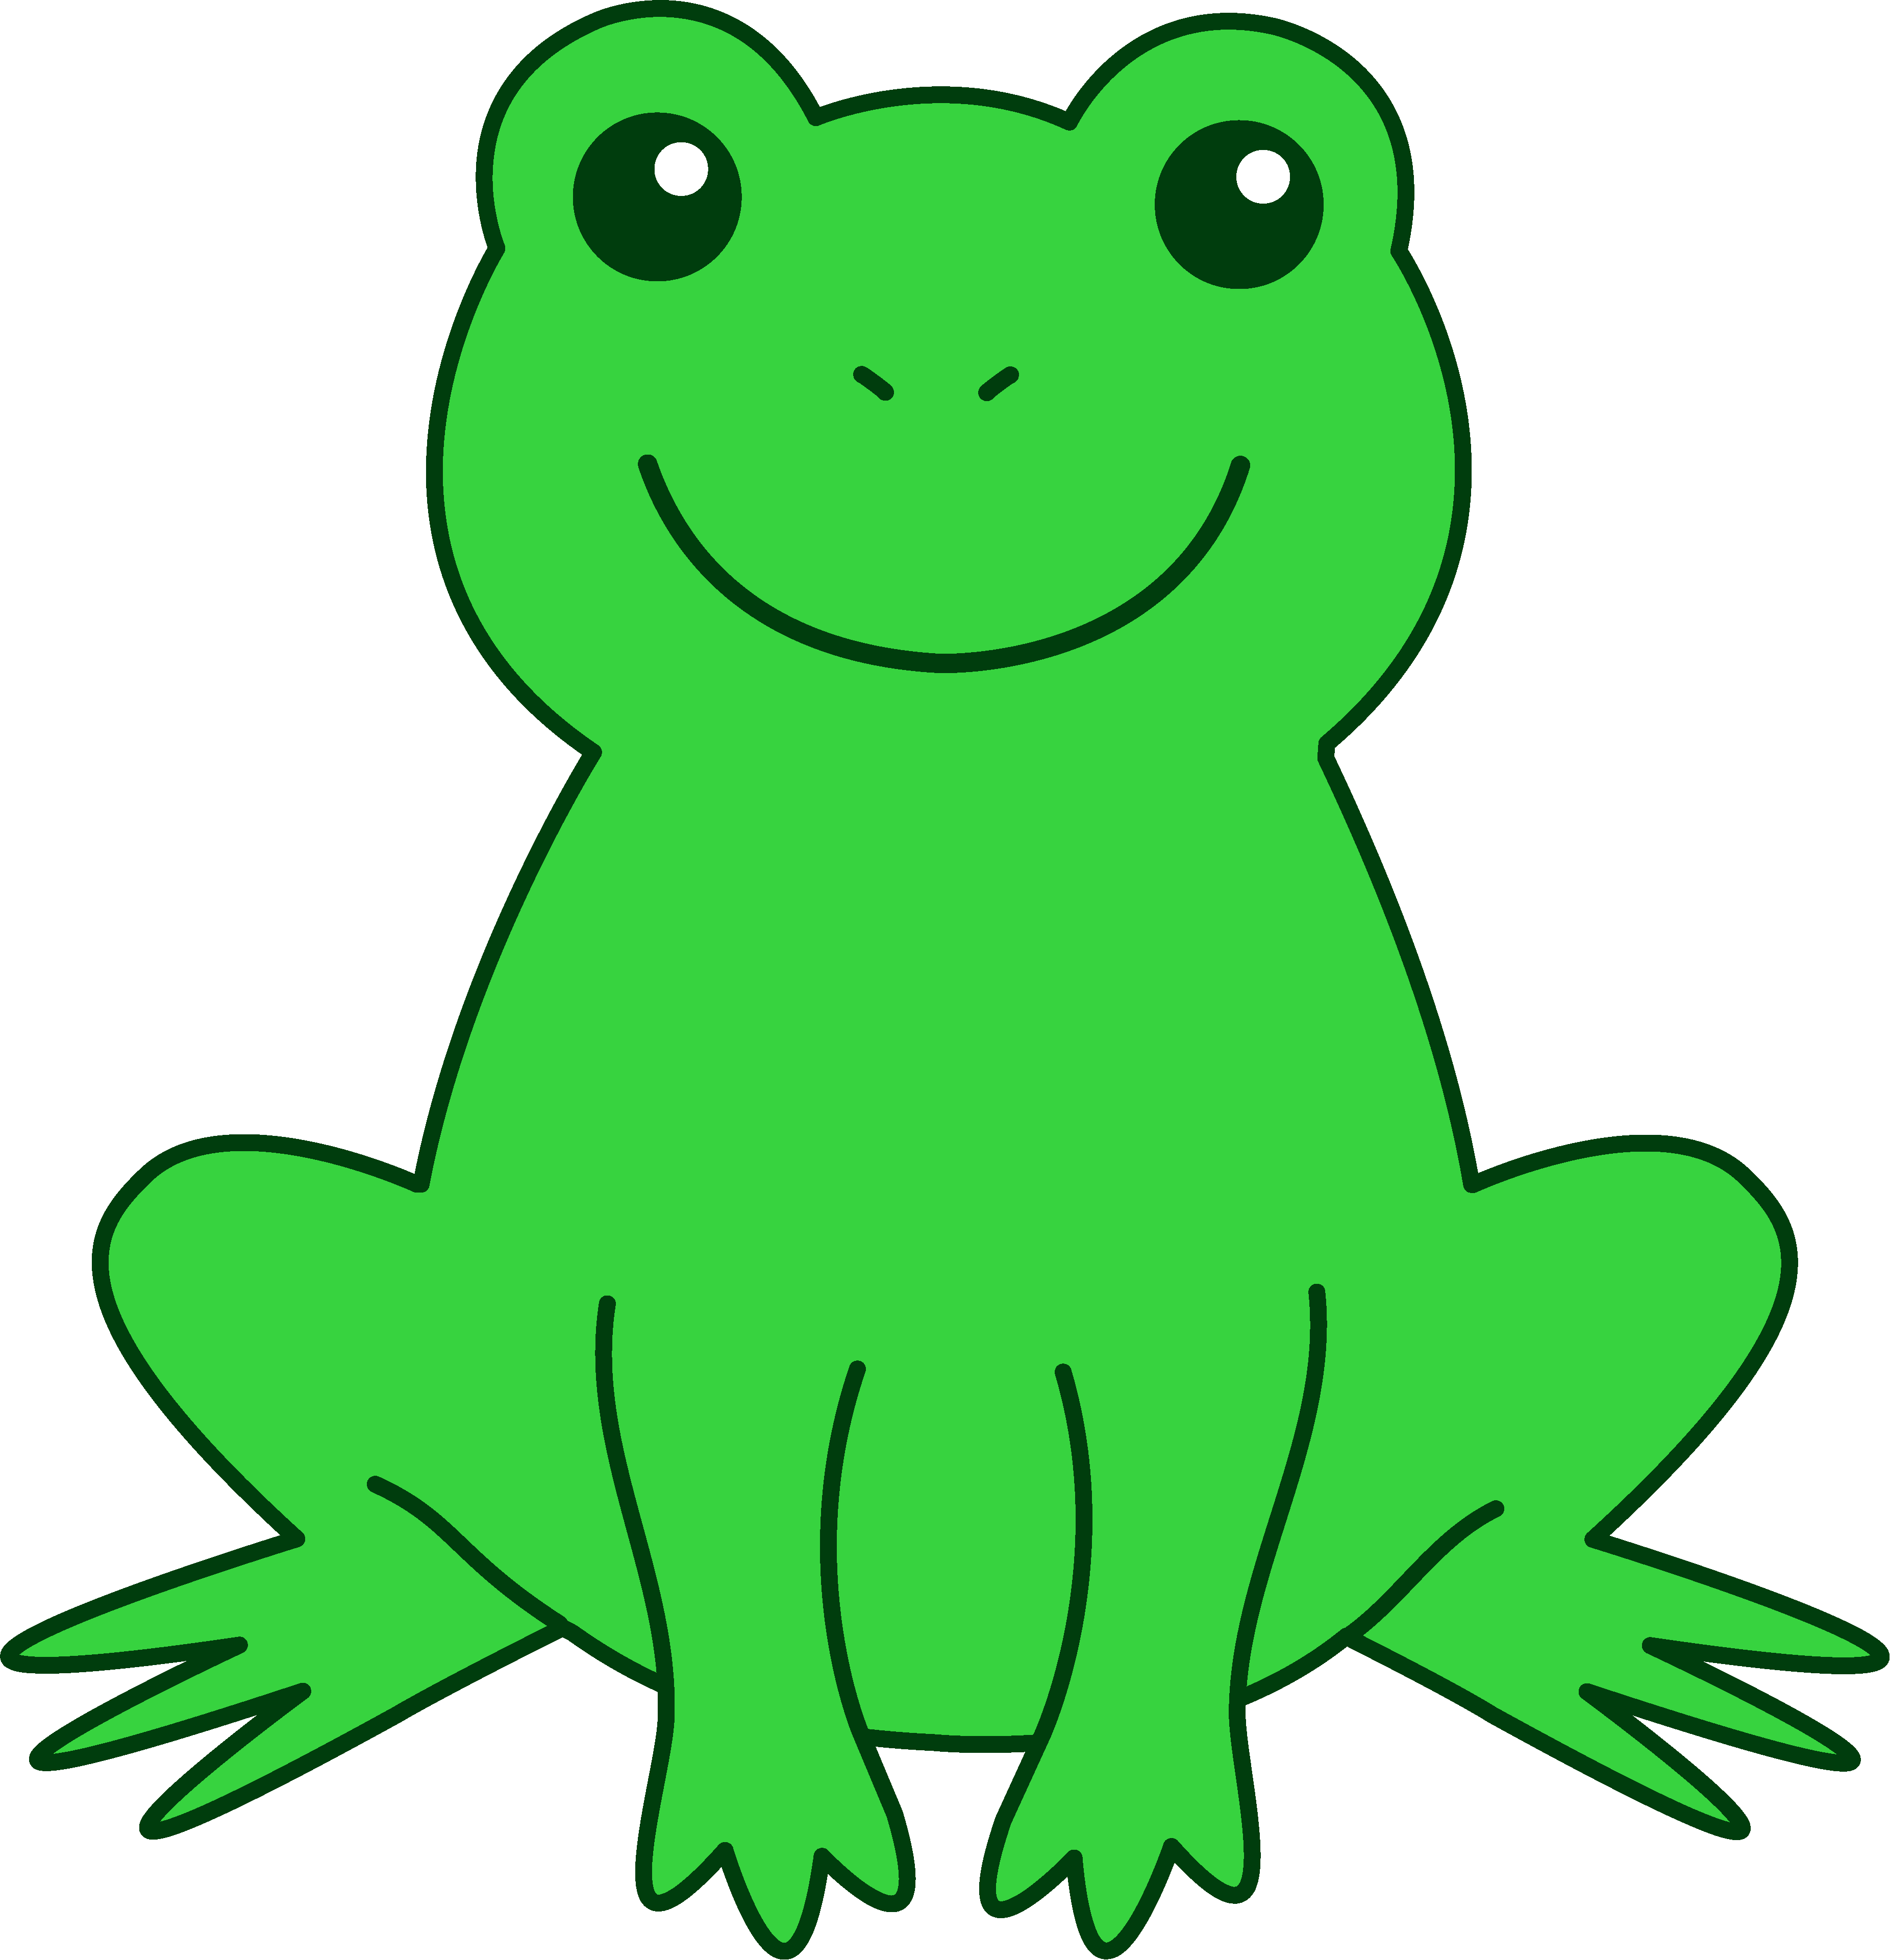 Frog with crown clipart clipart transparent download The Lego Movie Videogame is an action-adventure game developed by TT ... clipart transparent download